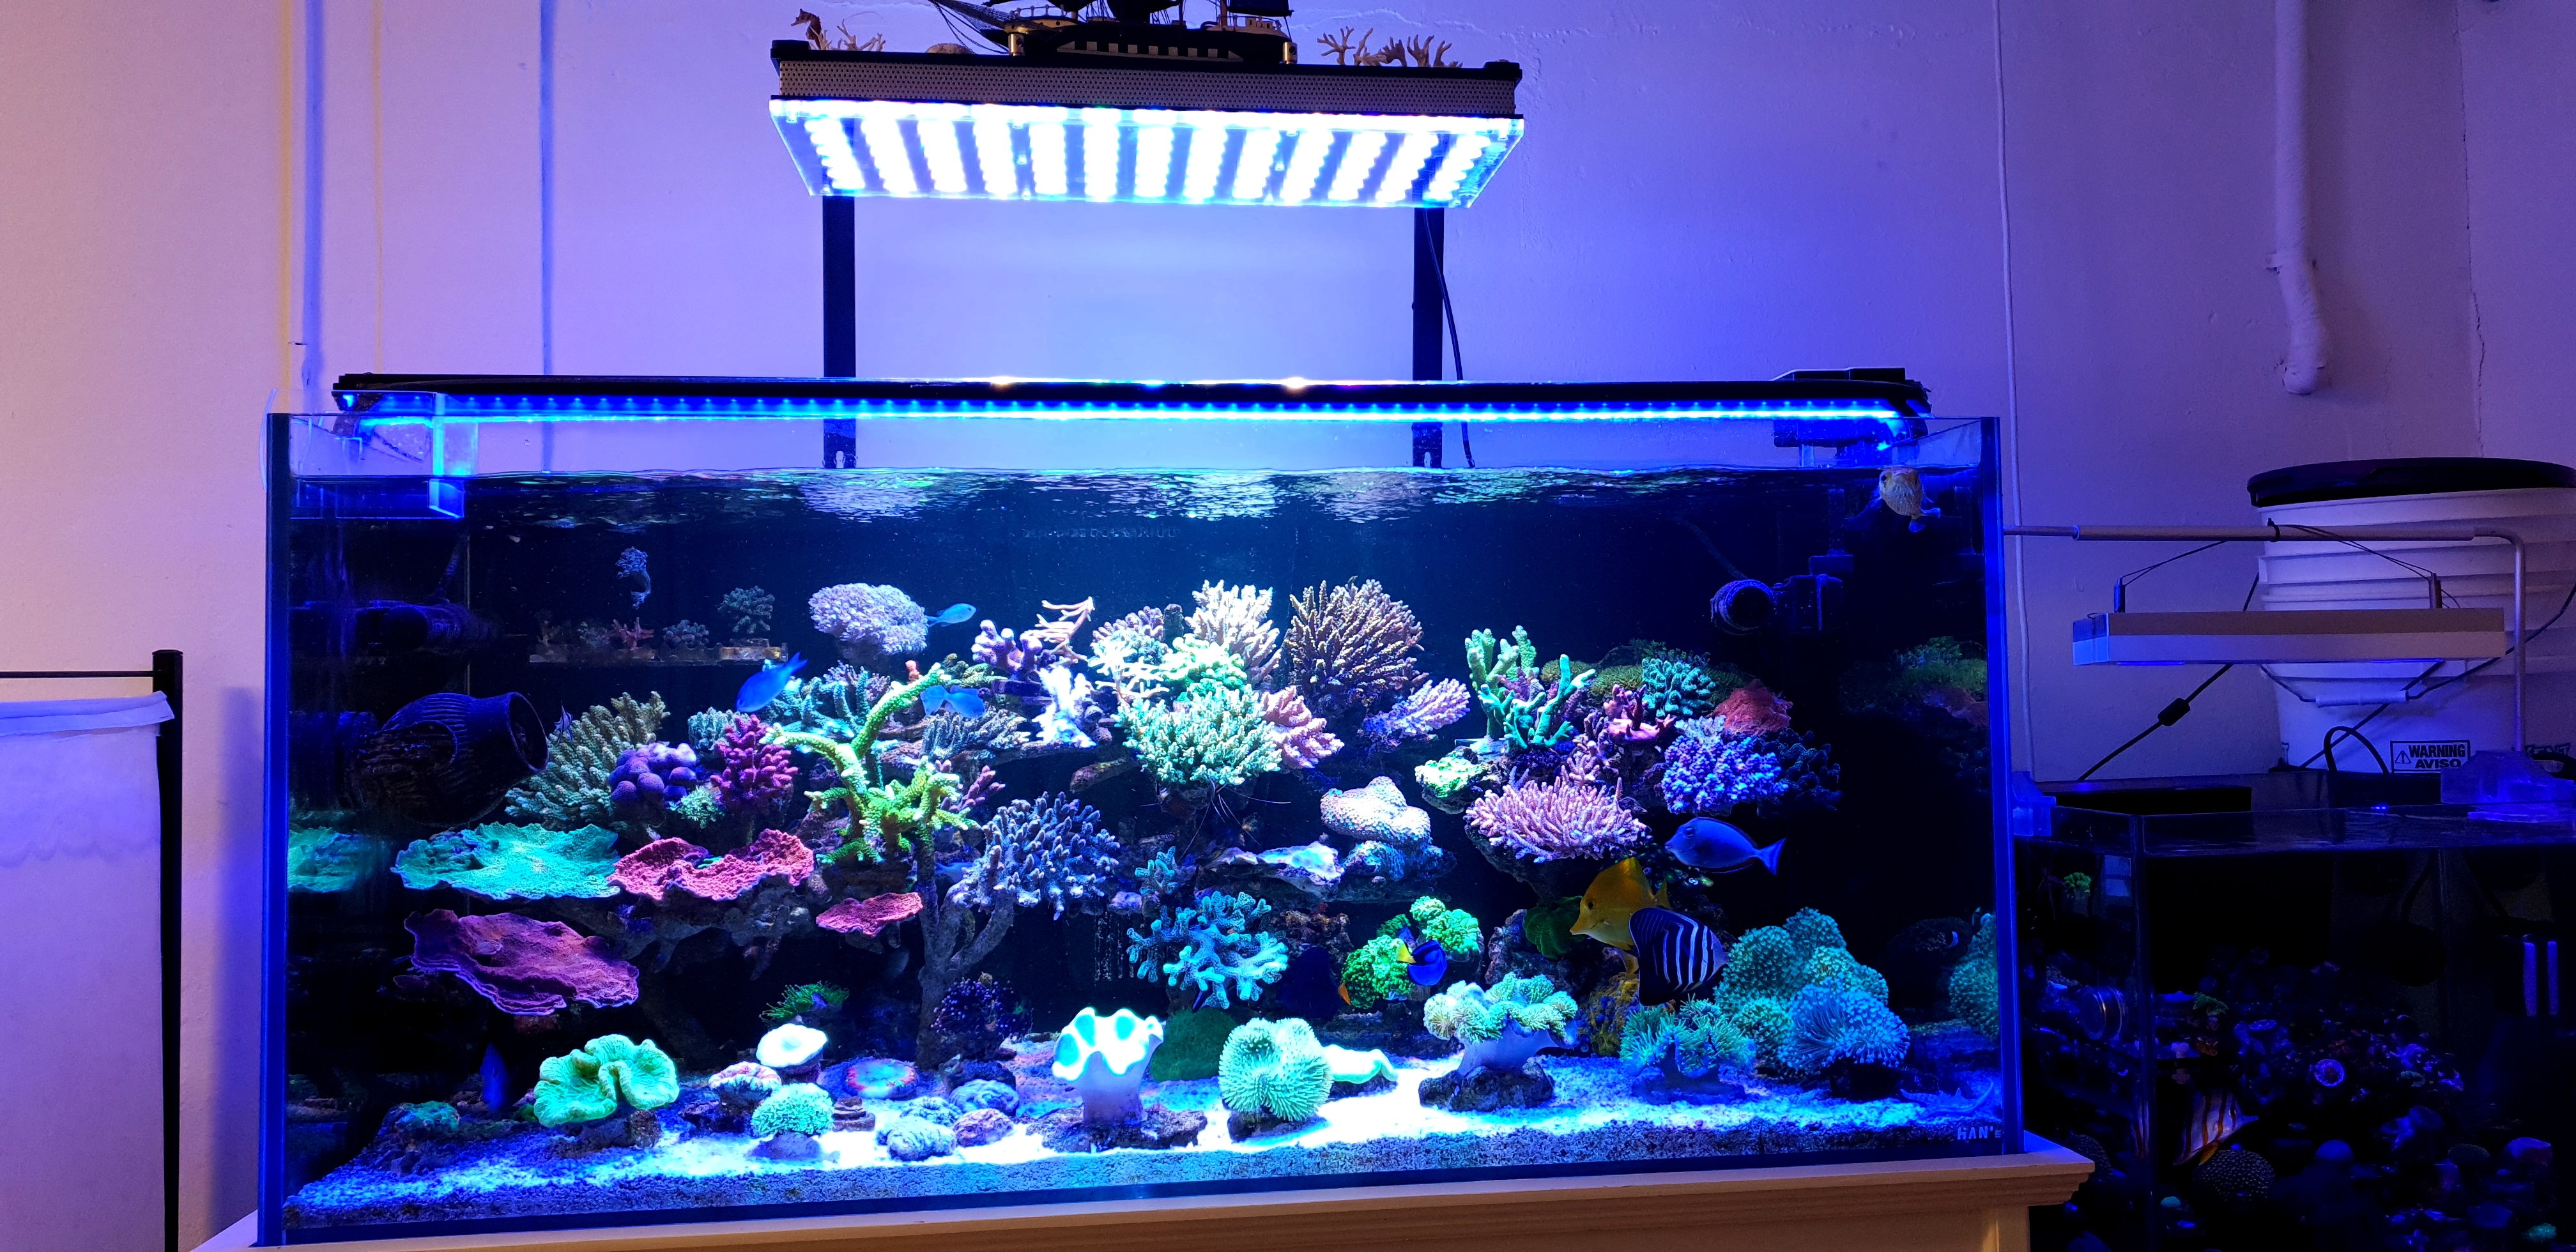 20 Reef Aquarium Photos With Orphek Or Bar Led Aquarium Led